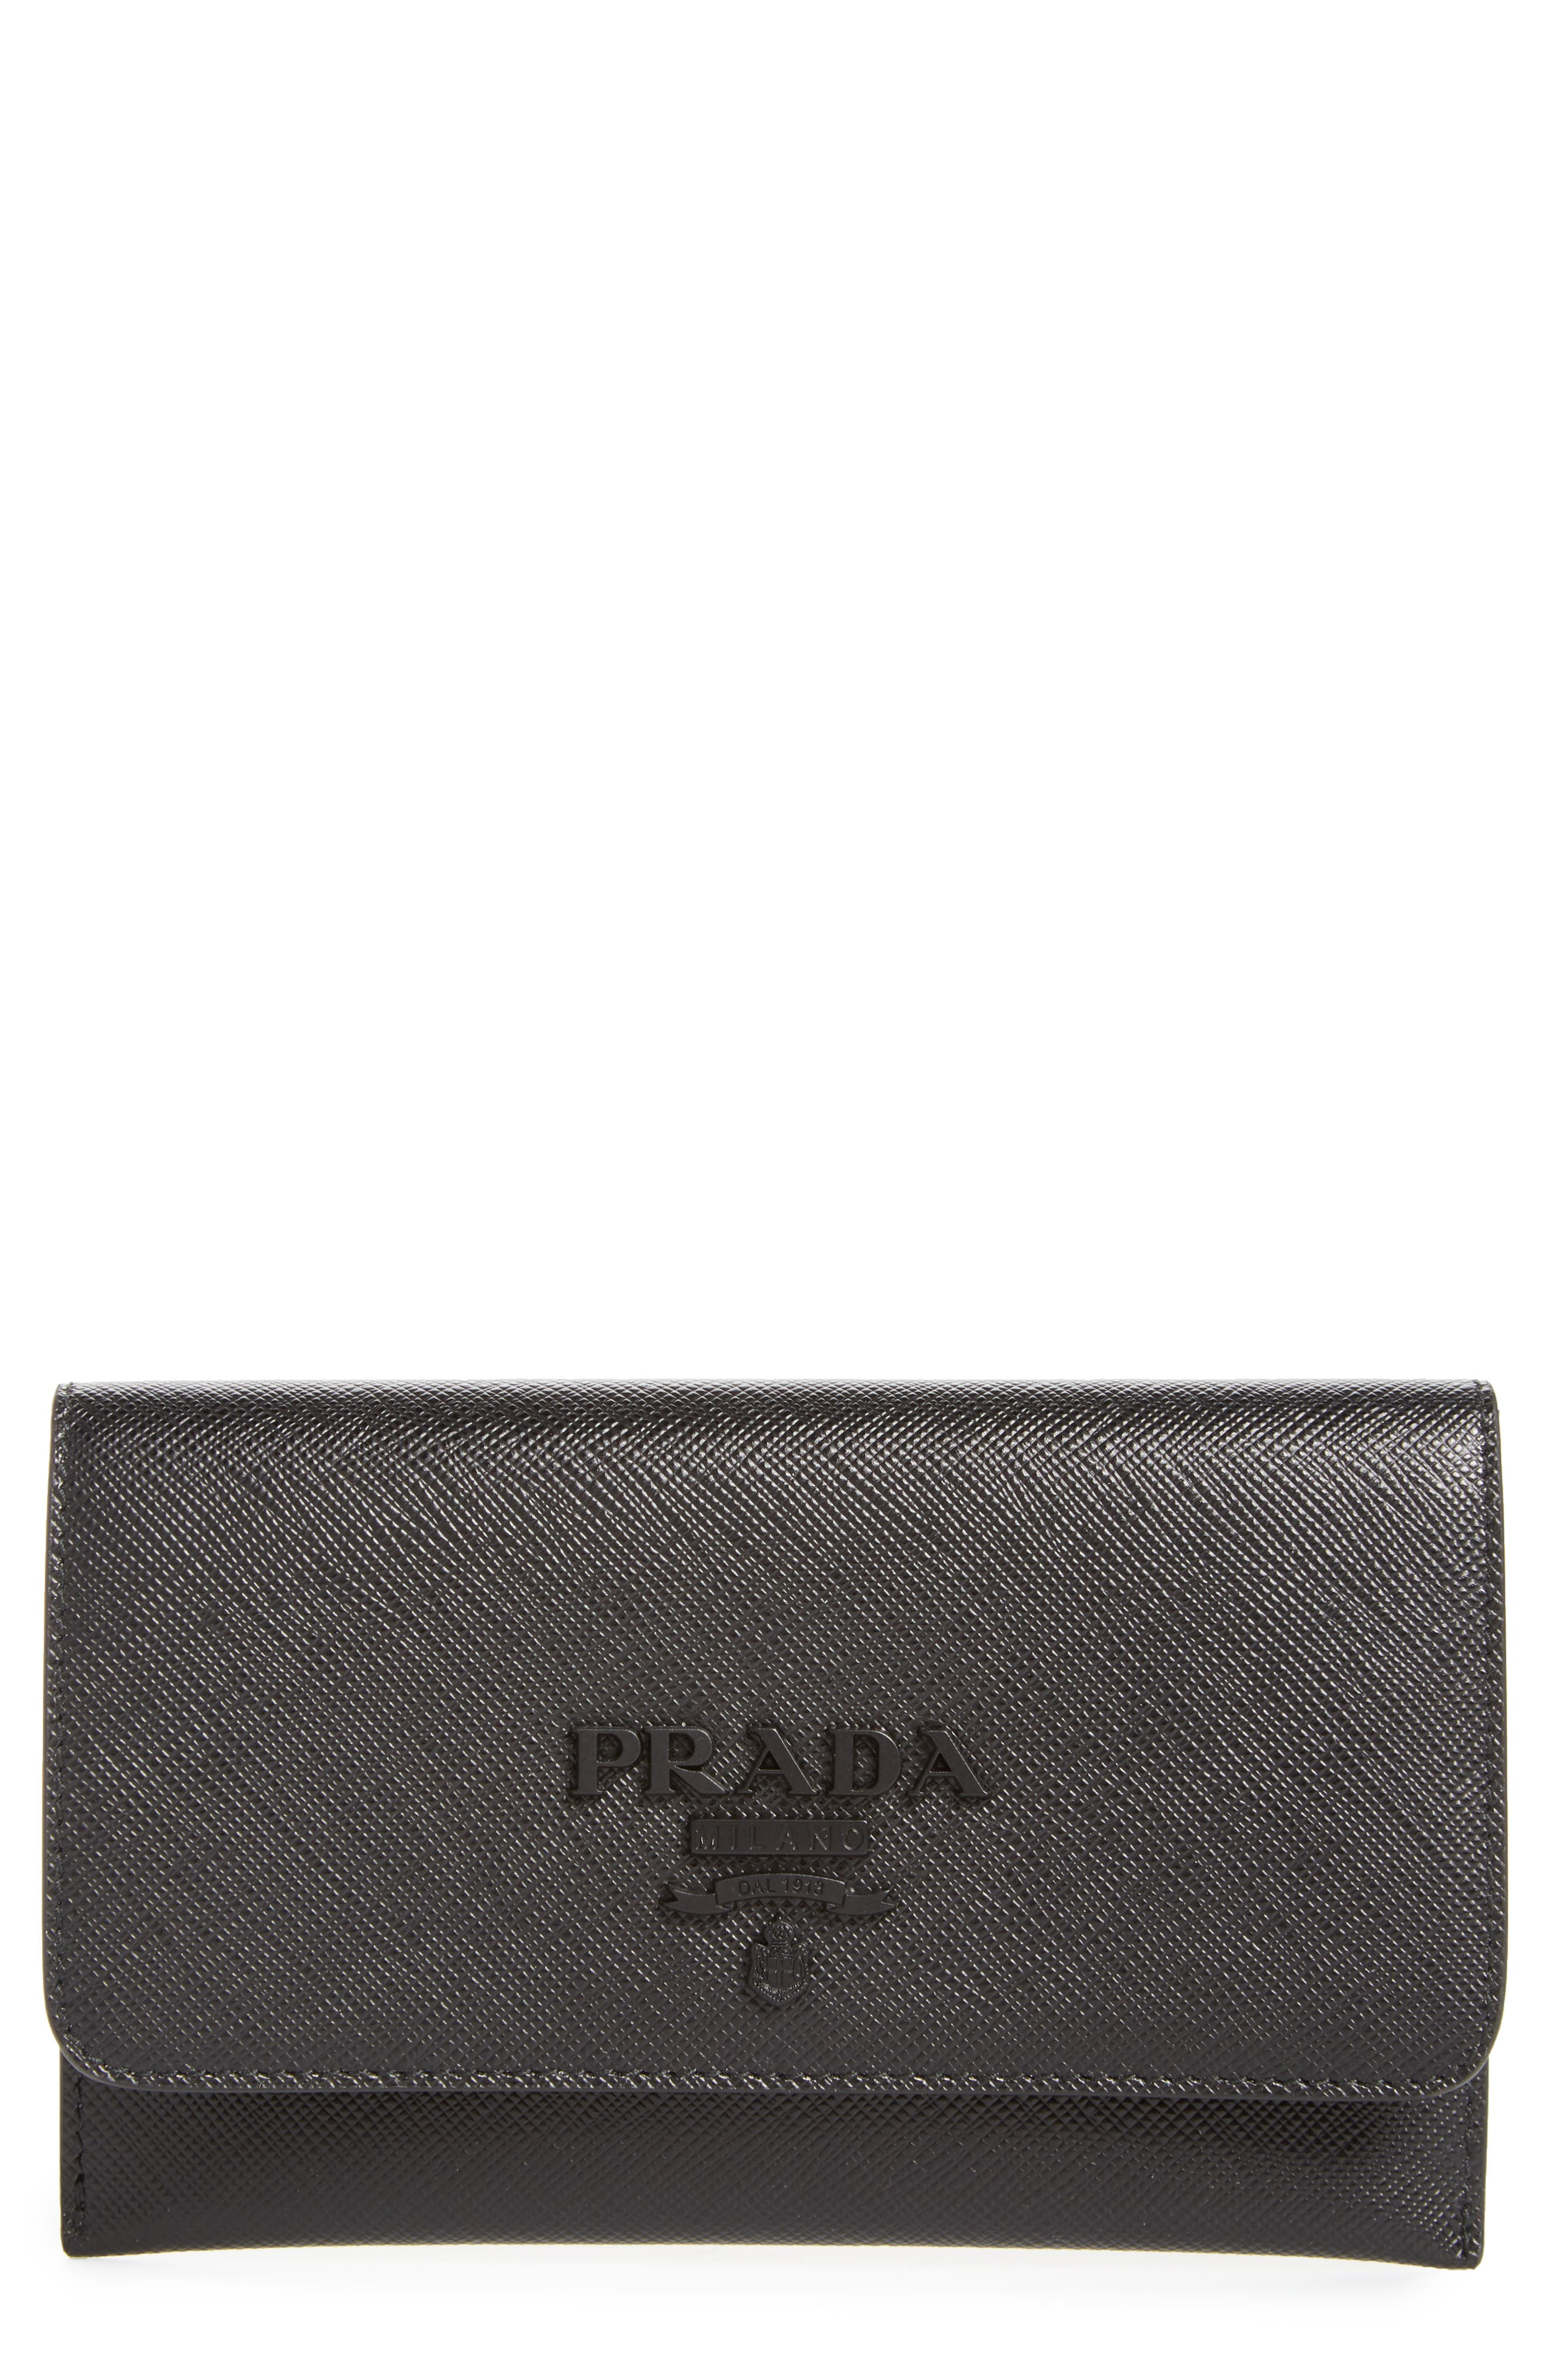 PRADA,                             Saffiano Leather Wallet,                             Main thumbnail 1, color,                             001